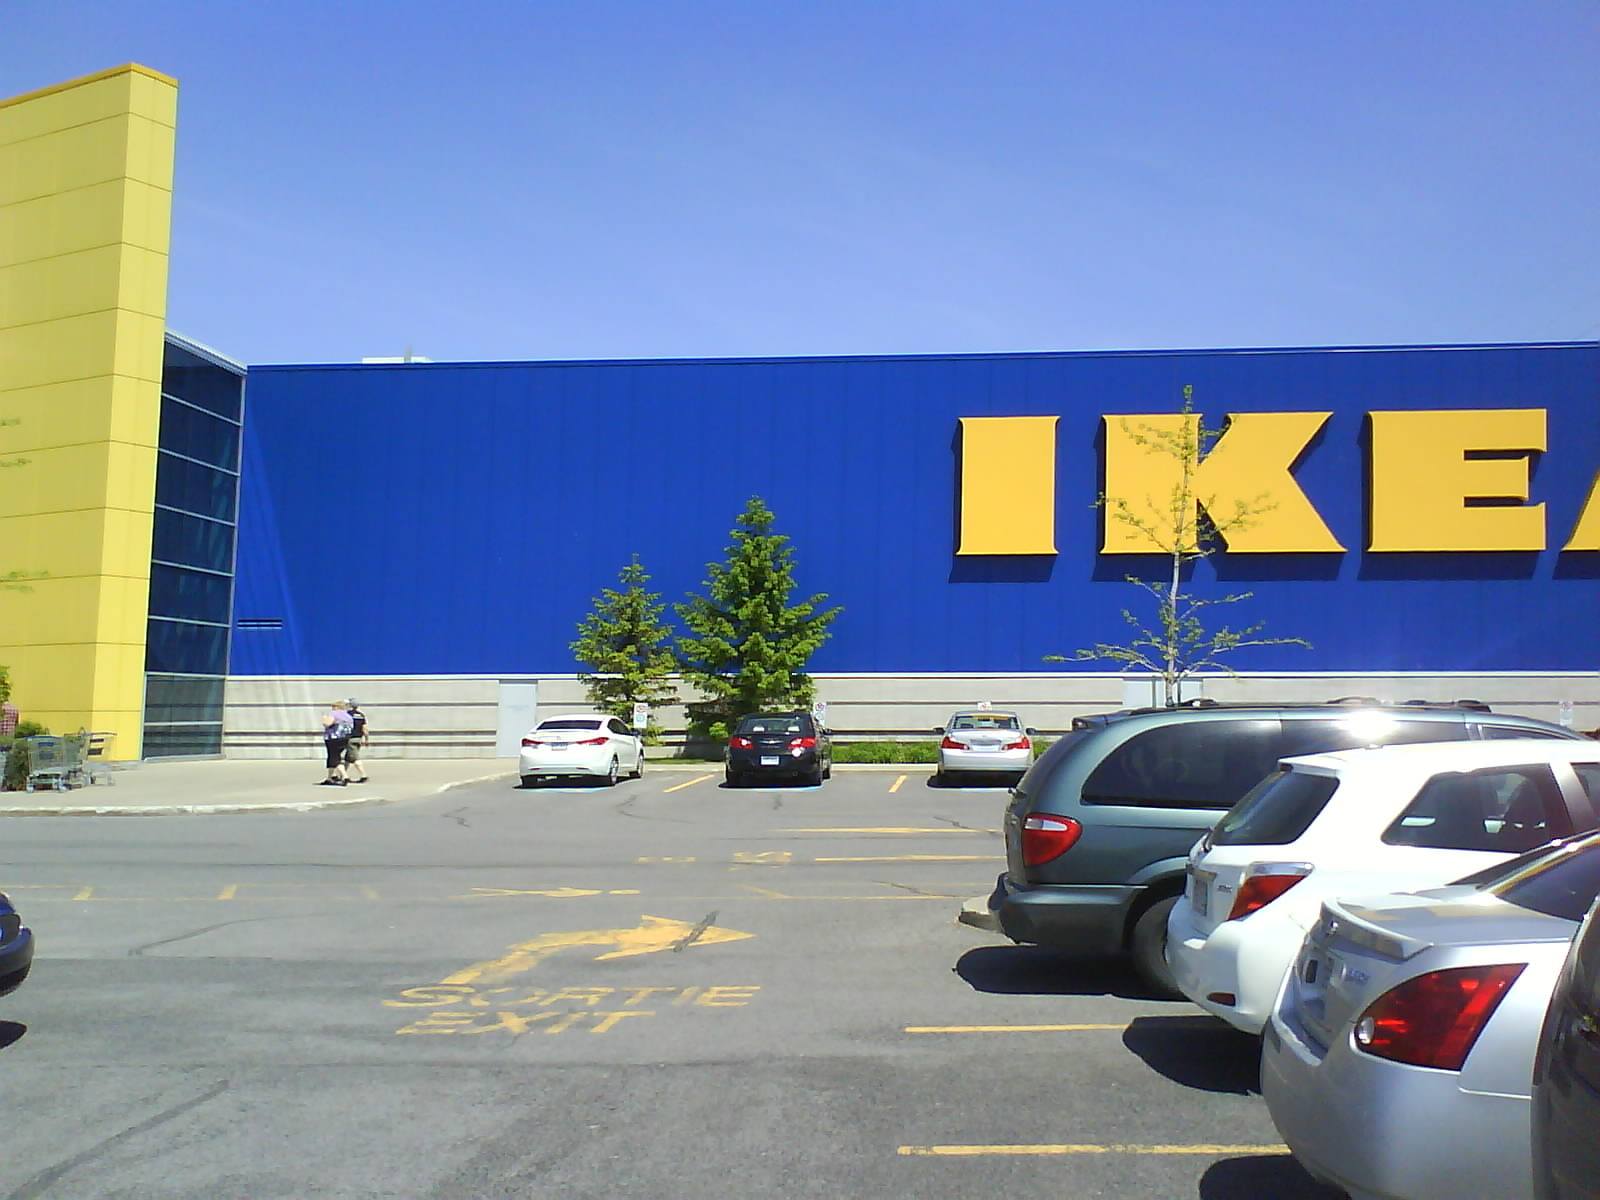 architecture branding ikea carves up cavernous expanses. Black Bedroom Furniture Sets. Home Design Ideas